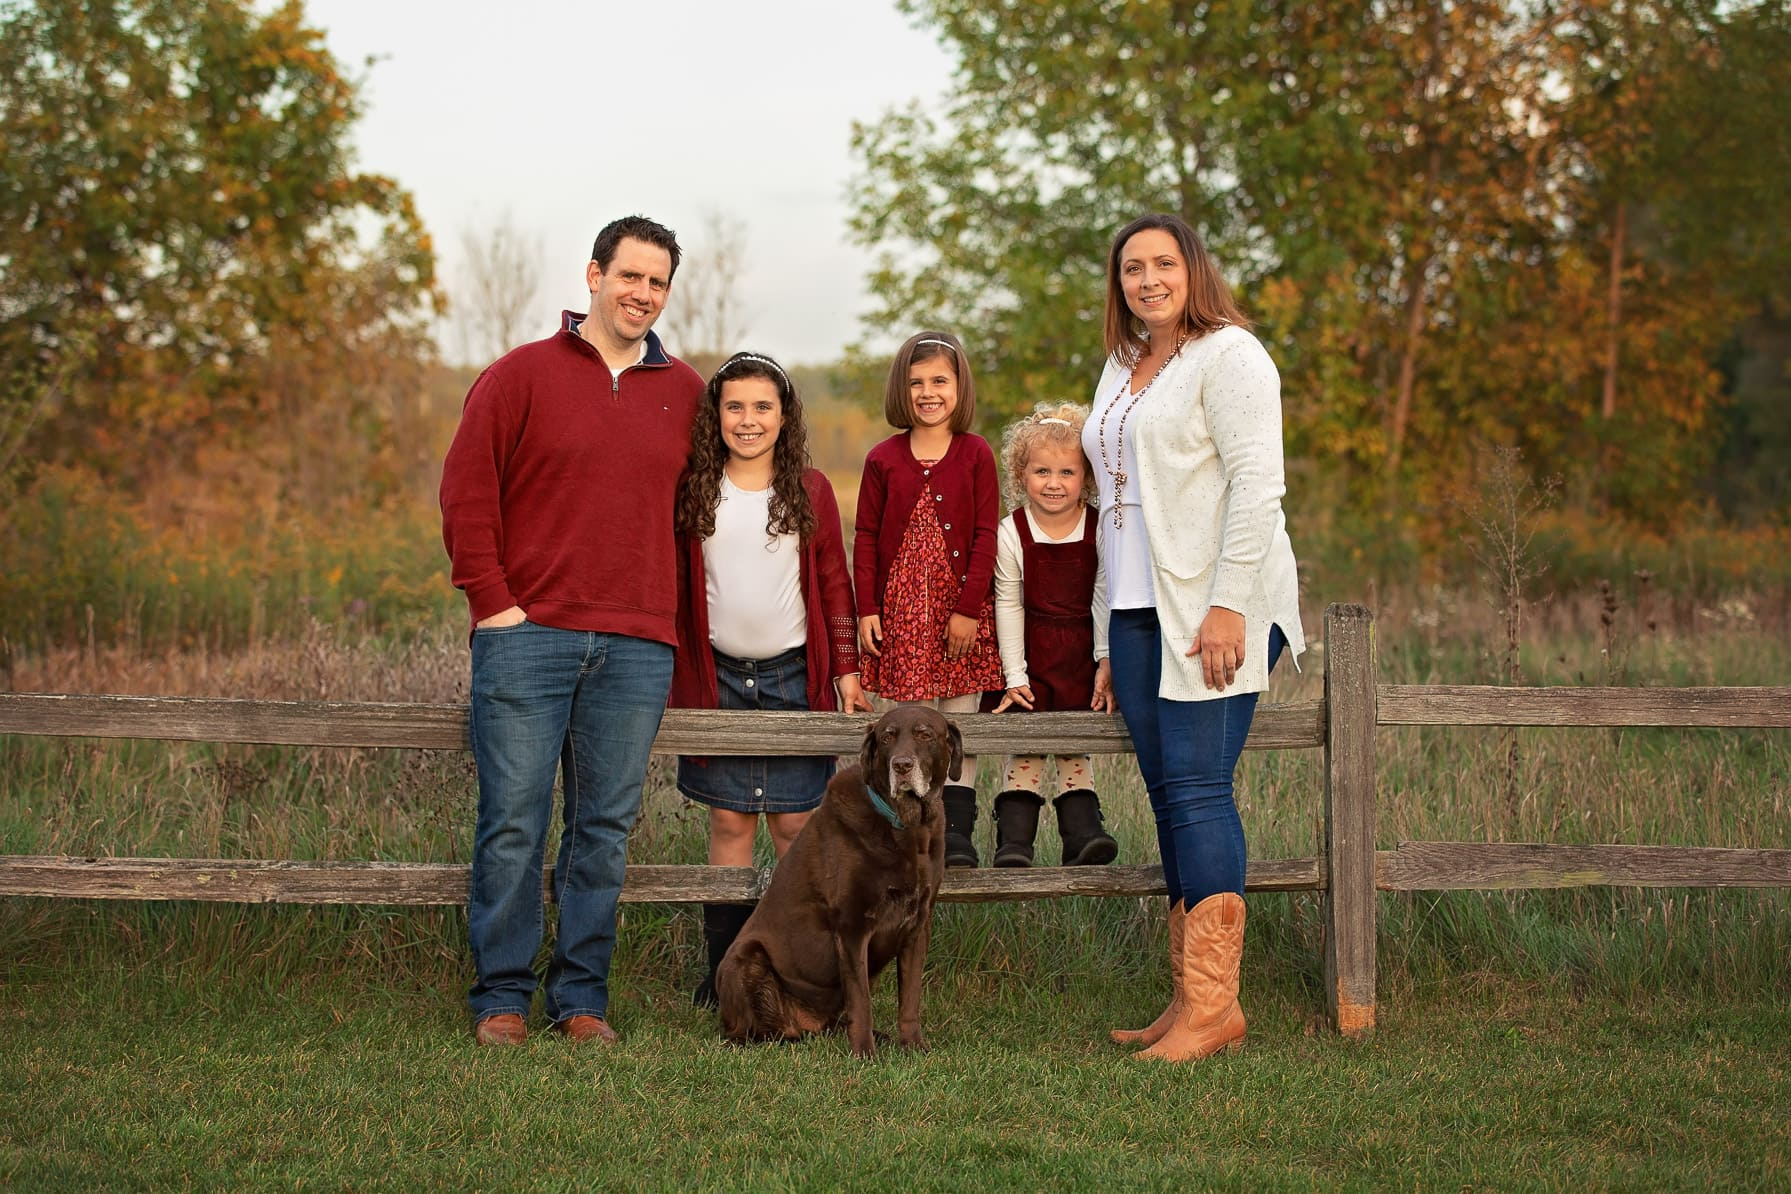 Family of 5 standing along a wooden fence with their dog during a Fall photo session at Roselle Park